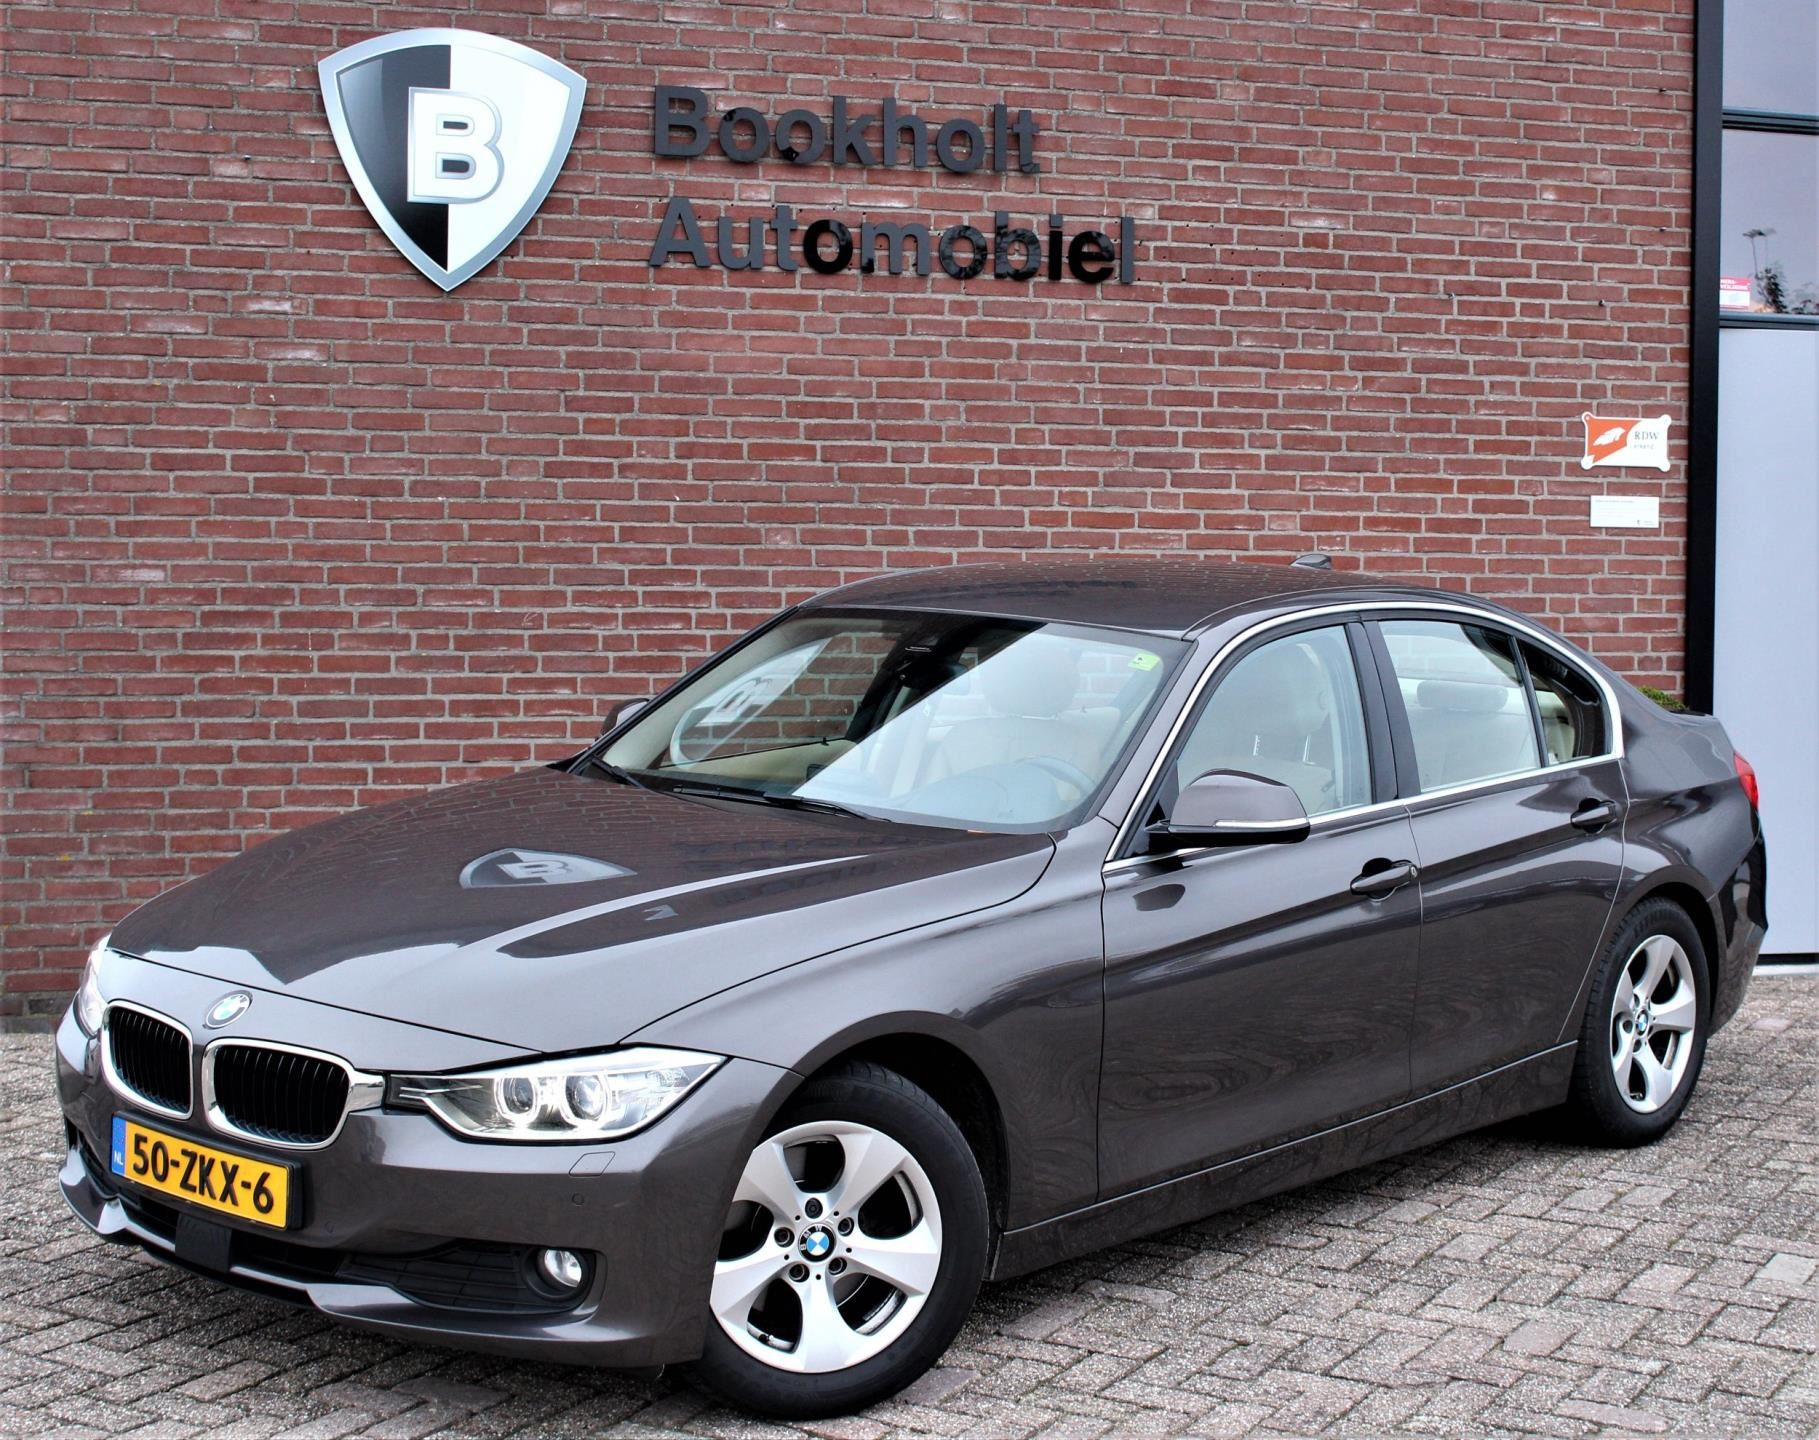 BMW 3-serie occasion - Bookholt Automobiel